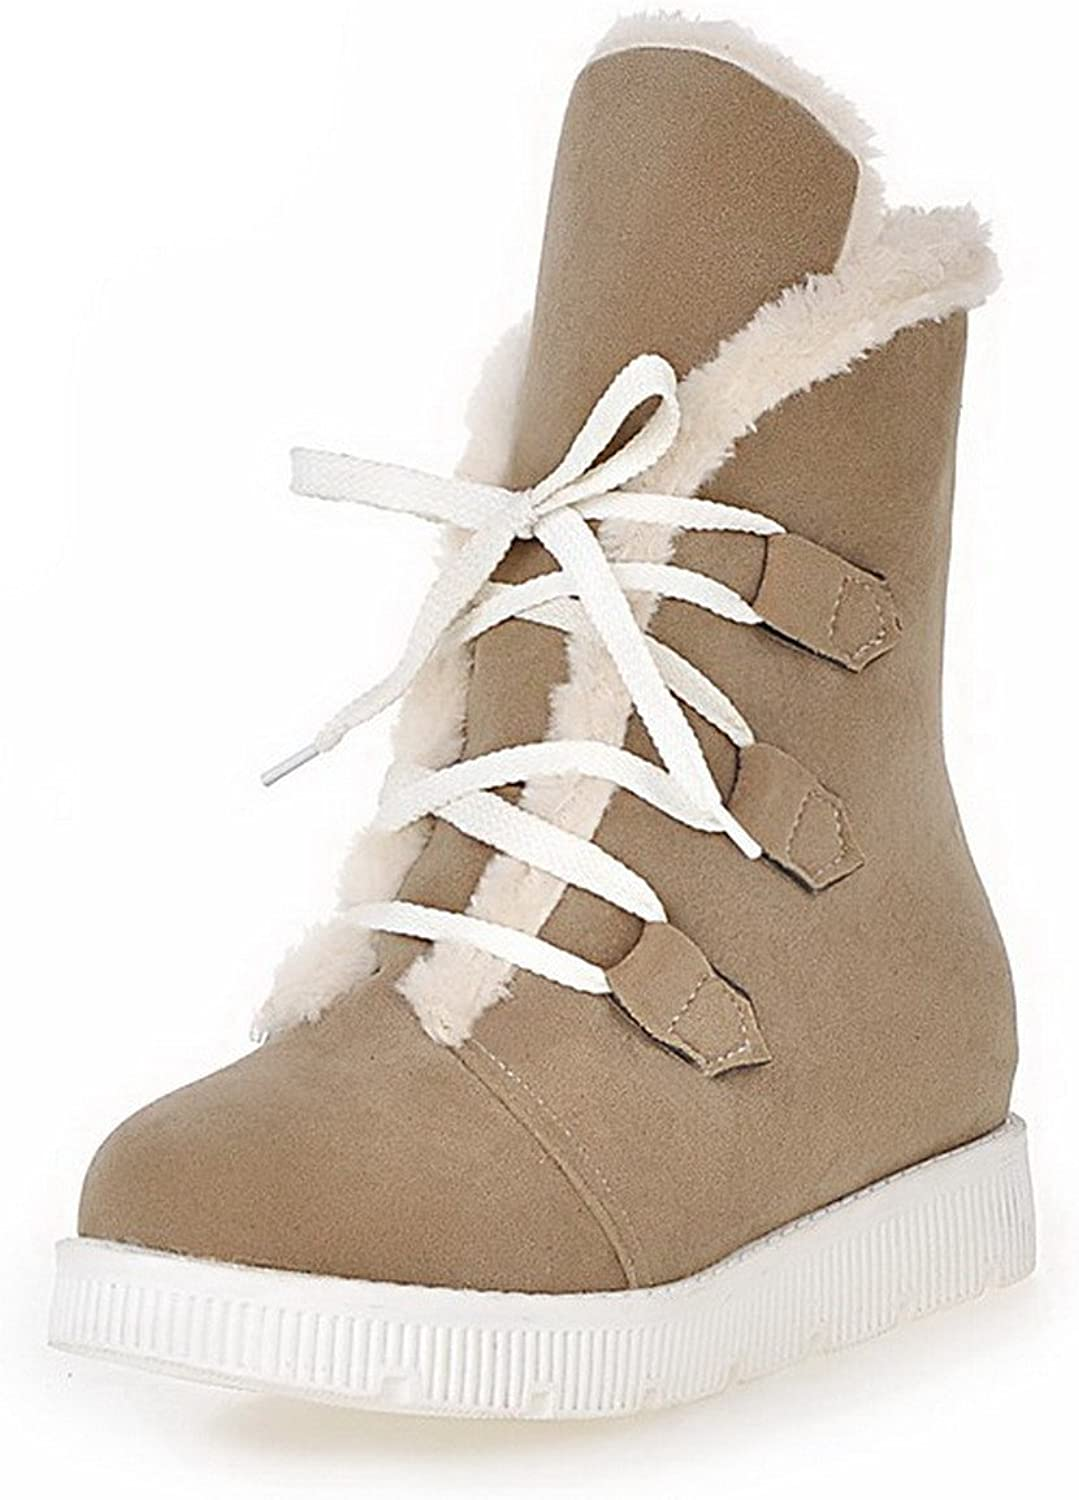 AllhqFashion Women's Low-Heels Frosted Low-Top Solid Lace-up Boots